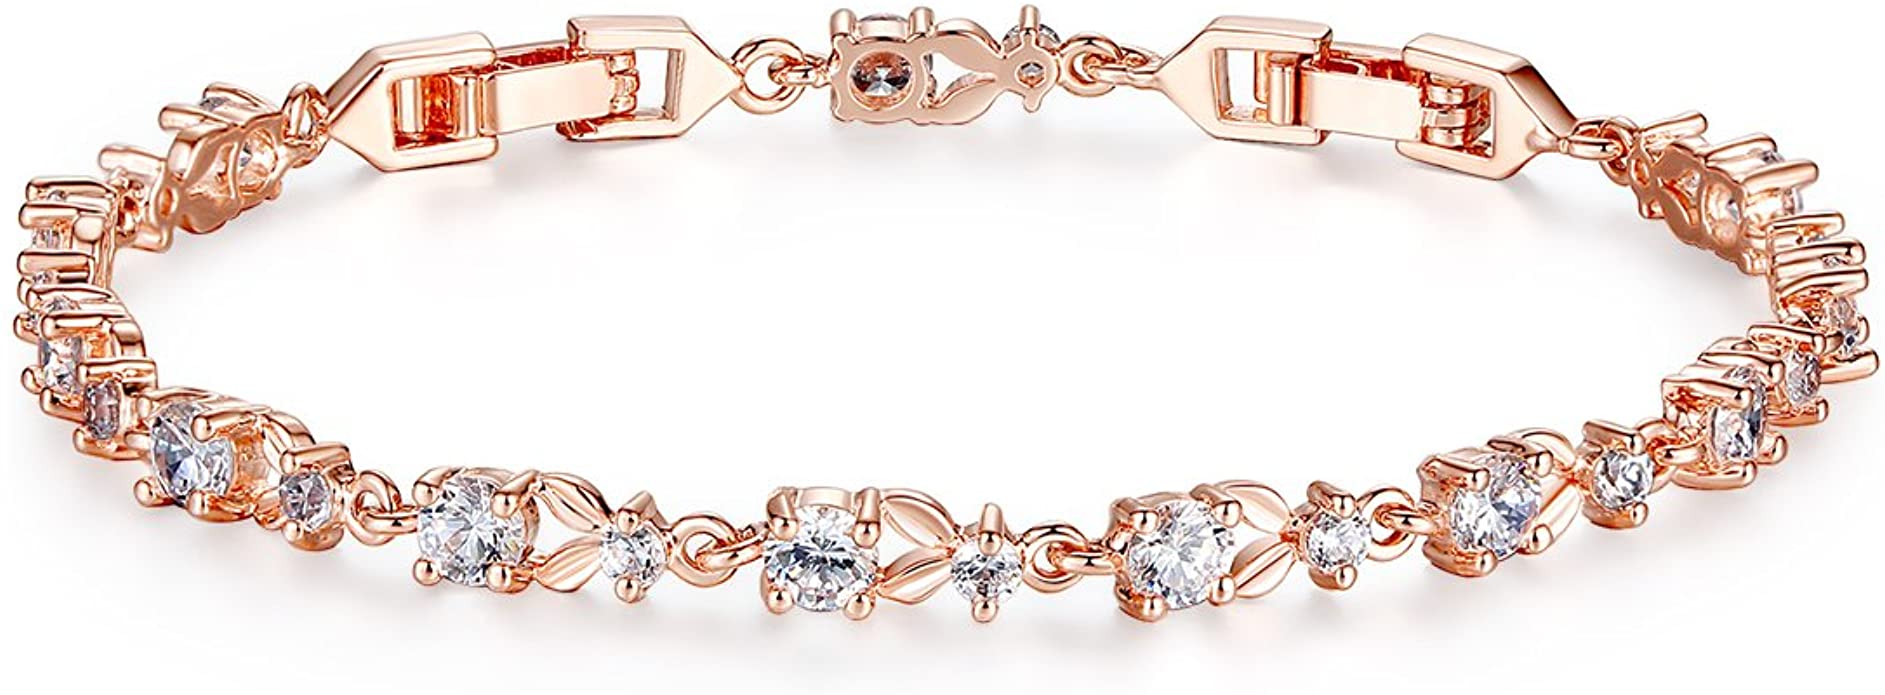 Rose Gold Plated Sterling Silver /& CZ Crystal Adult Bracelet 7.5 Inches